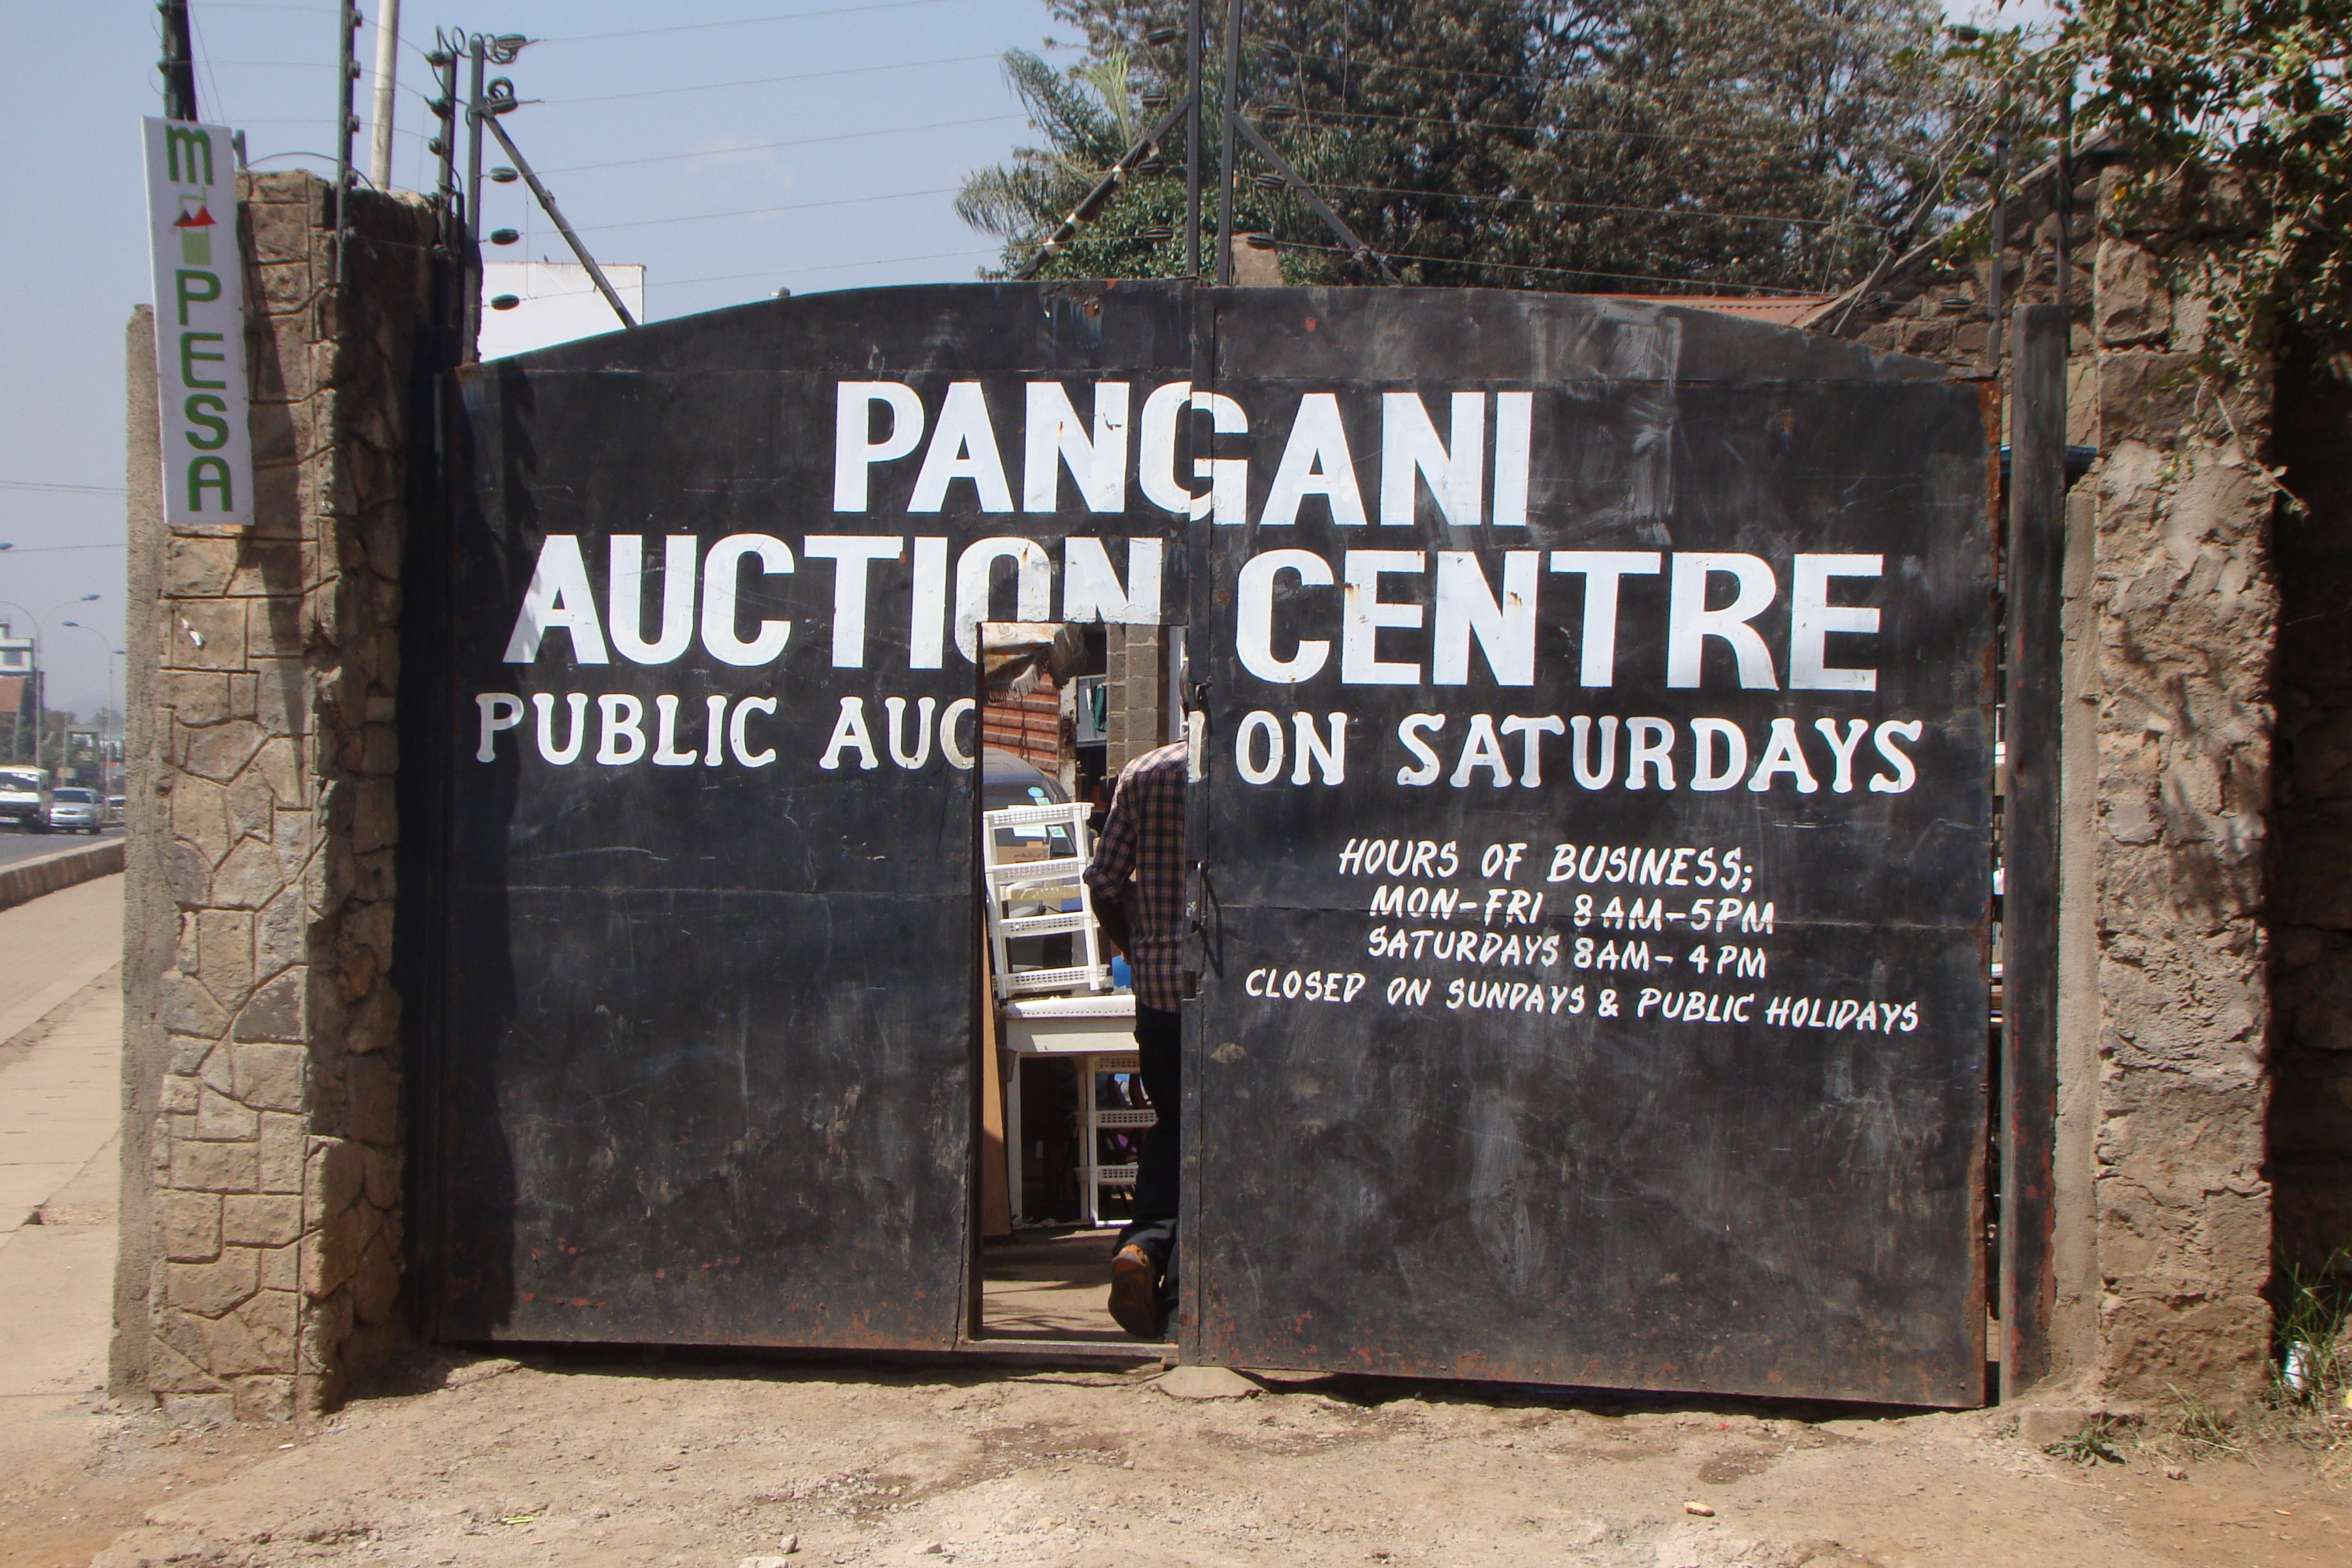 Public Auctions of Used Goods, Furniture and Equipment